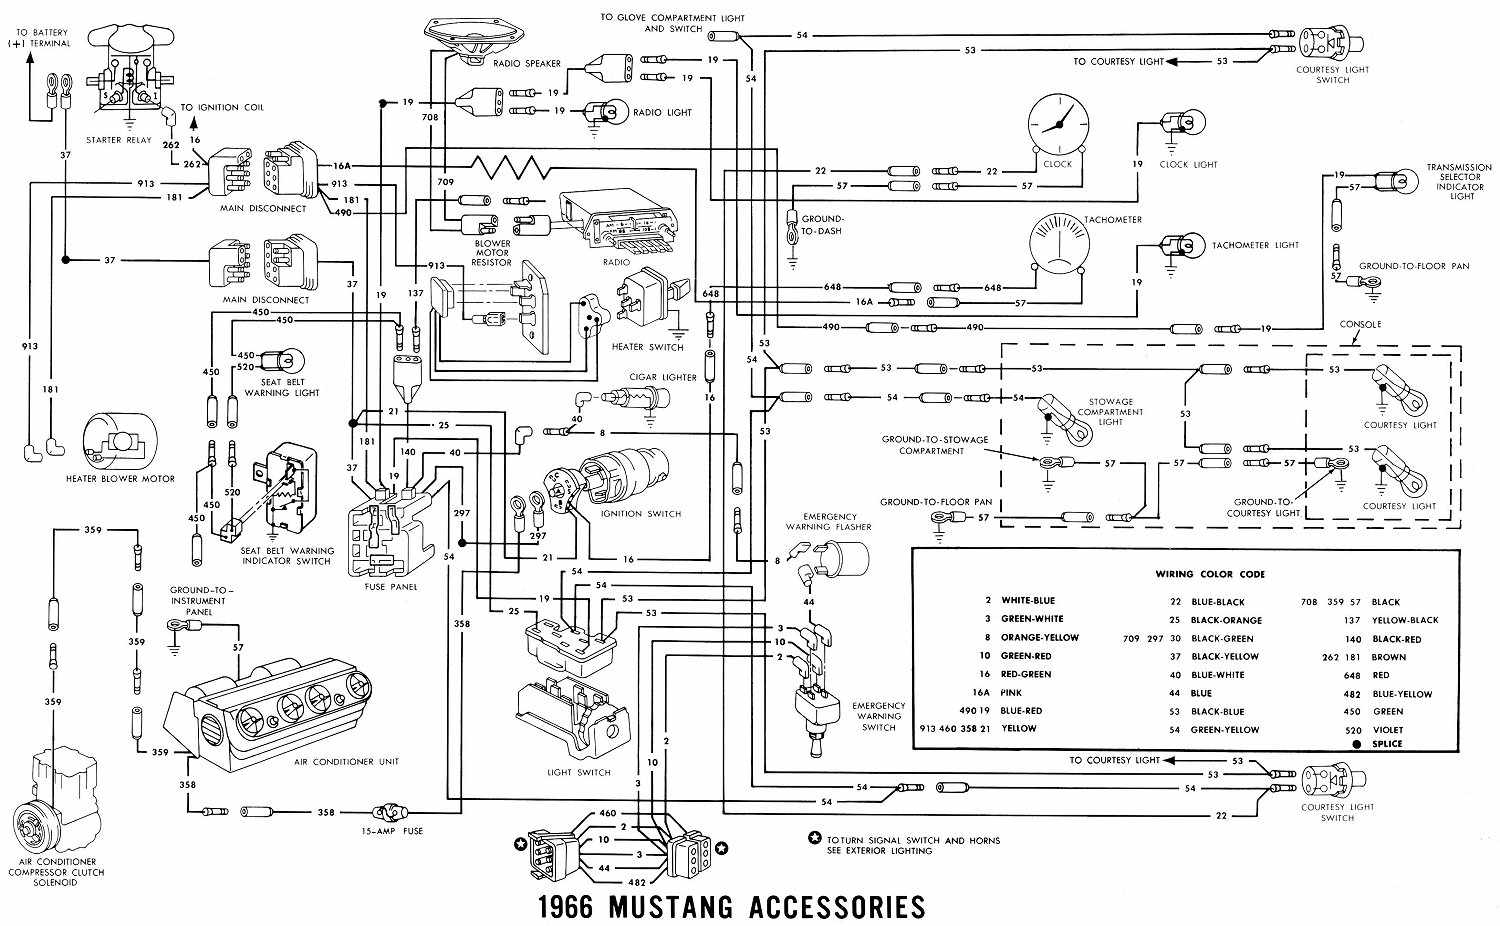 1968 mustang radio wiring diagram wiring diagram fuse box u2022 rh friendsoffido co 66 mustang coupe wiring diagram